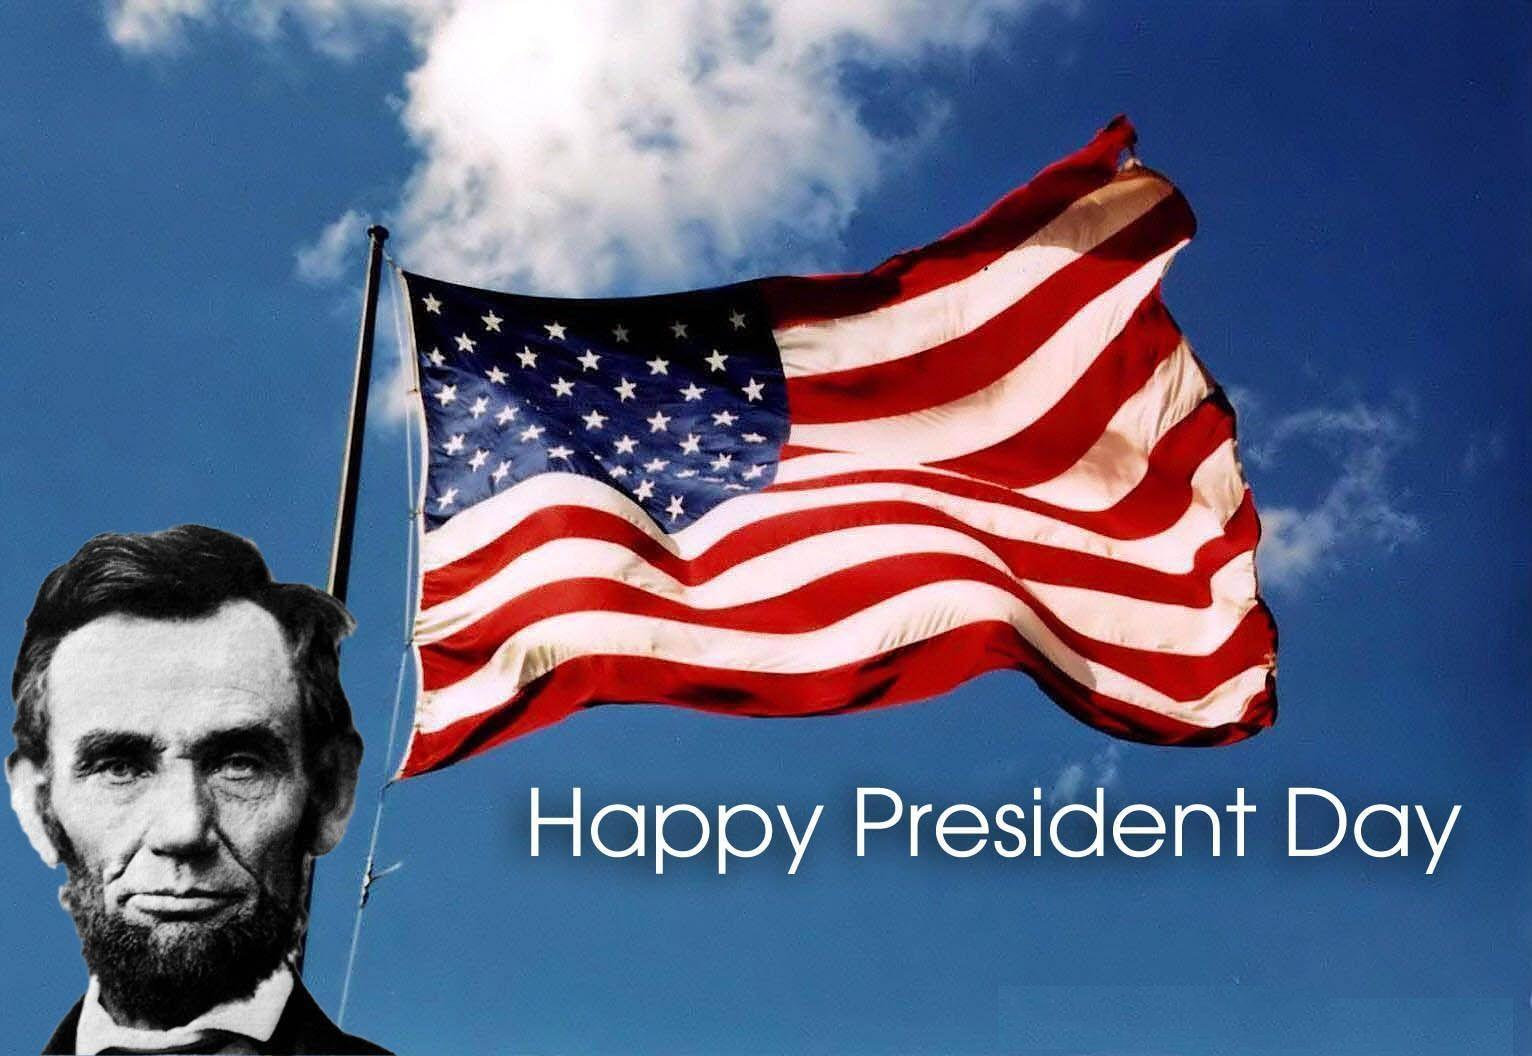 Happy Presidents Day 2014 Wallpaper | HD Wallpapers Store